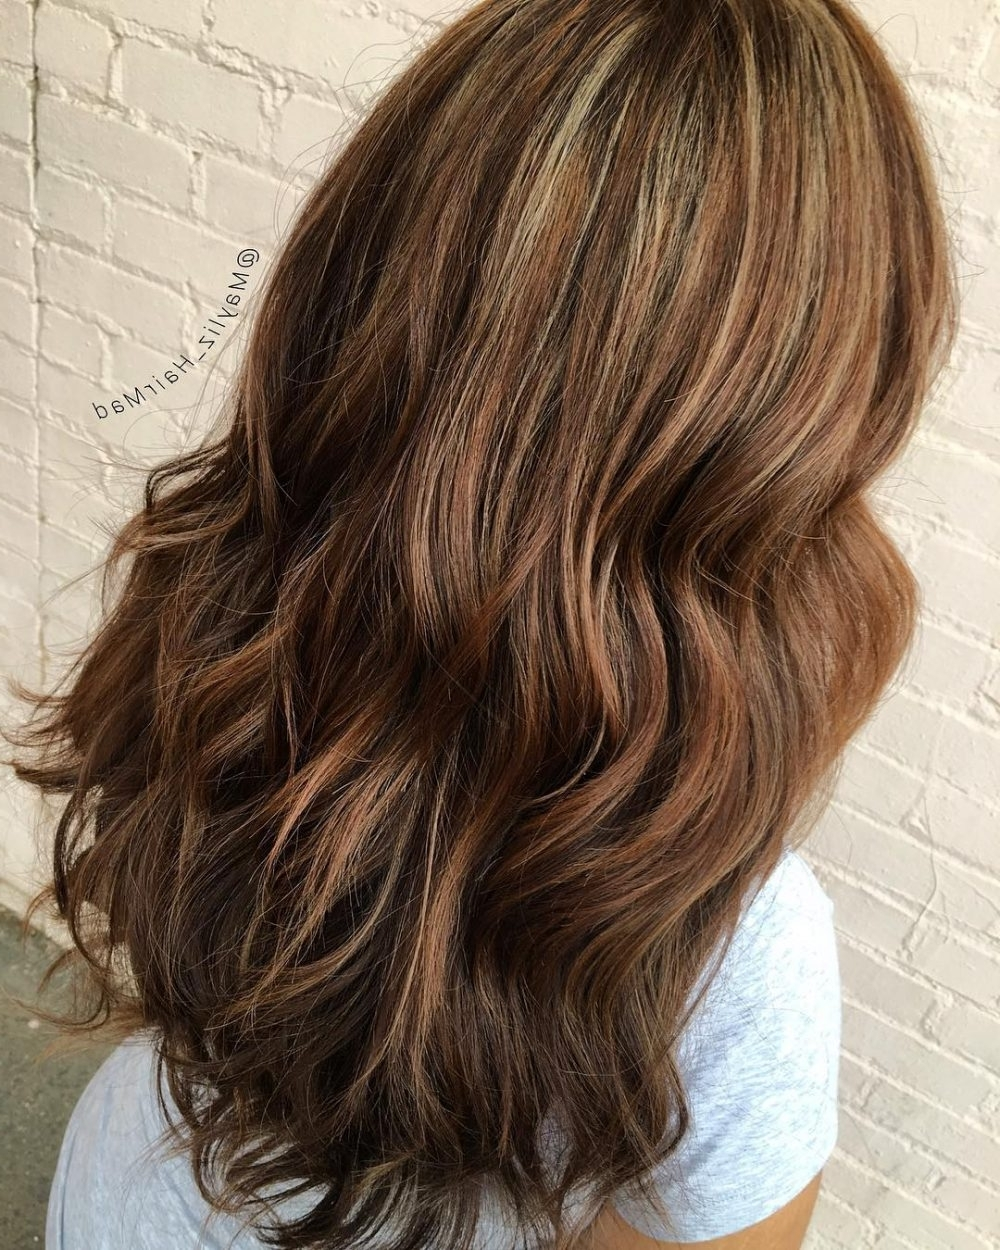 31 Most Delectable Caramel Highlights You'll See In 2018 With Regard To Well Known Dirty Blonde Hairstyles With Subtle Highlights (View 2 of 20)